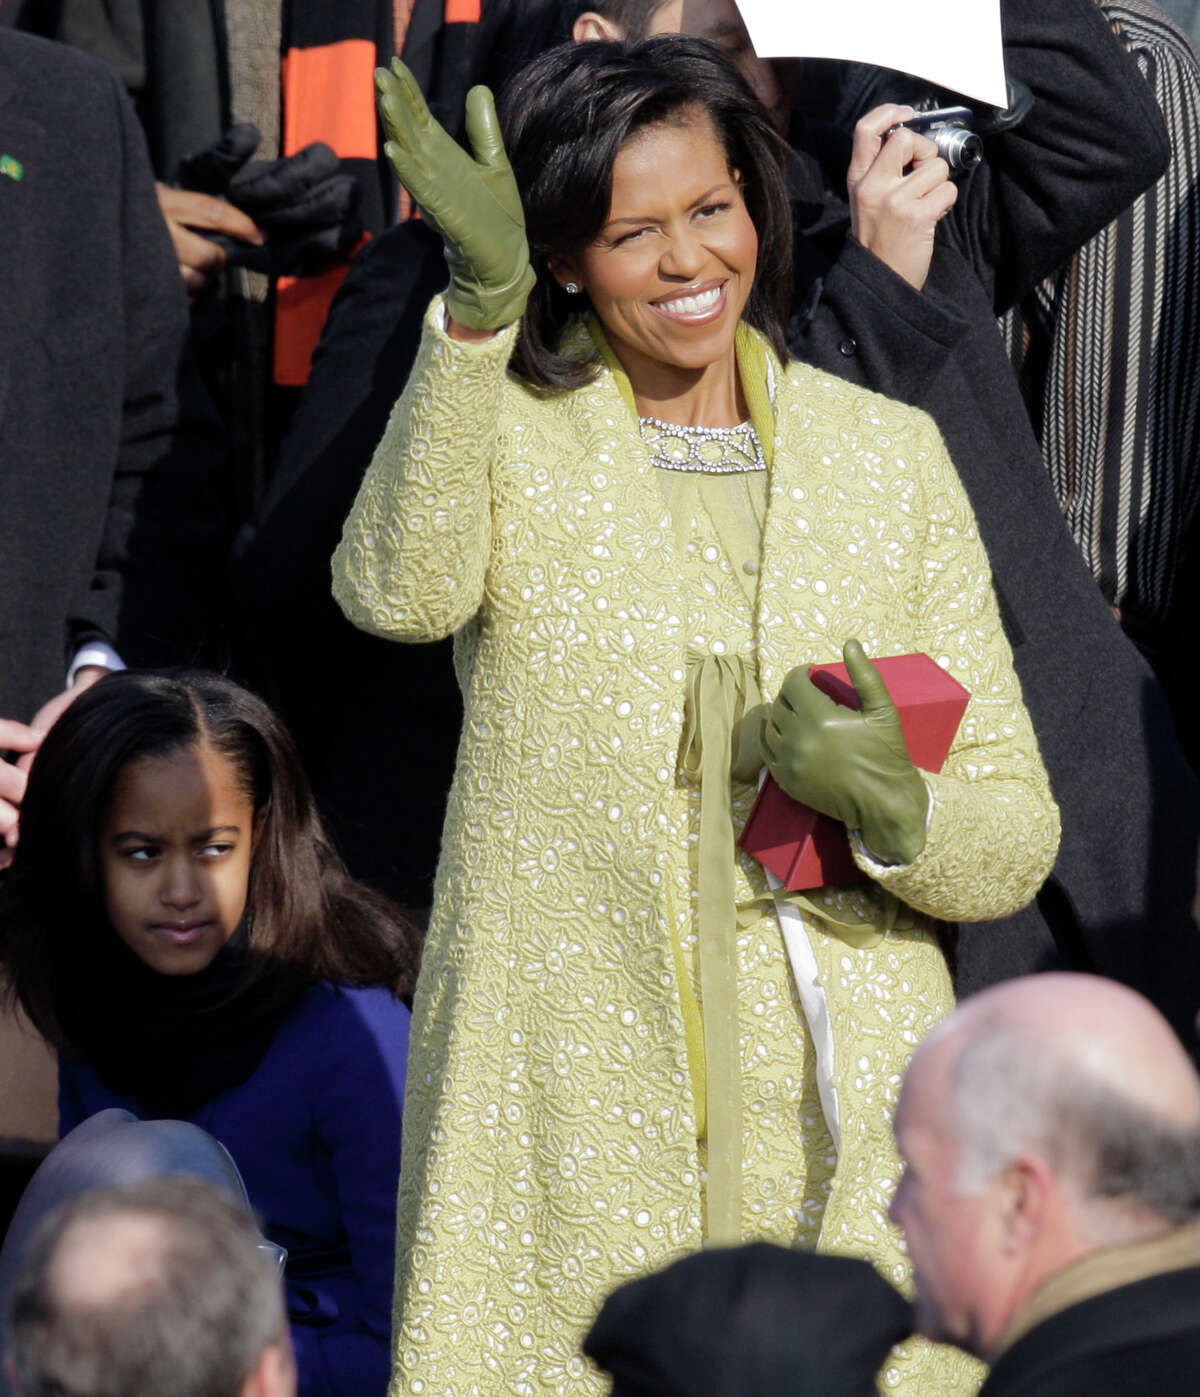 **FILE** This Jan. 20, 2009 file photo shows Michelle Obama as she arrives for the inauguration ceremony at the U.S. Capitol in Washington. The color of Michelle Obama's Isabel Toledo ensemble appeared to shift and change all day Tuesday, leading some observers wondering what to call the shade. (AP Photo/Jae C. Hong, FILE)